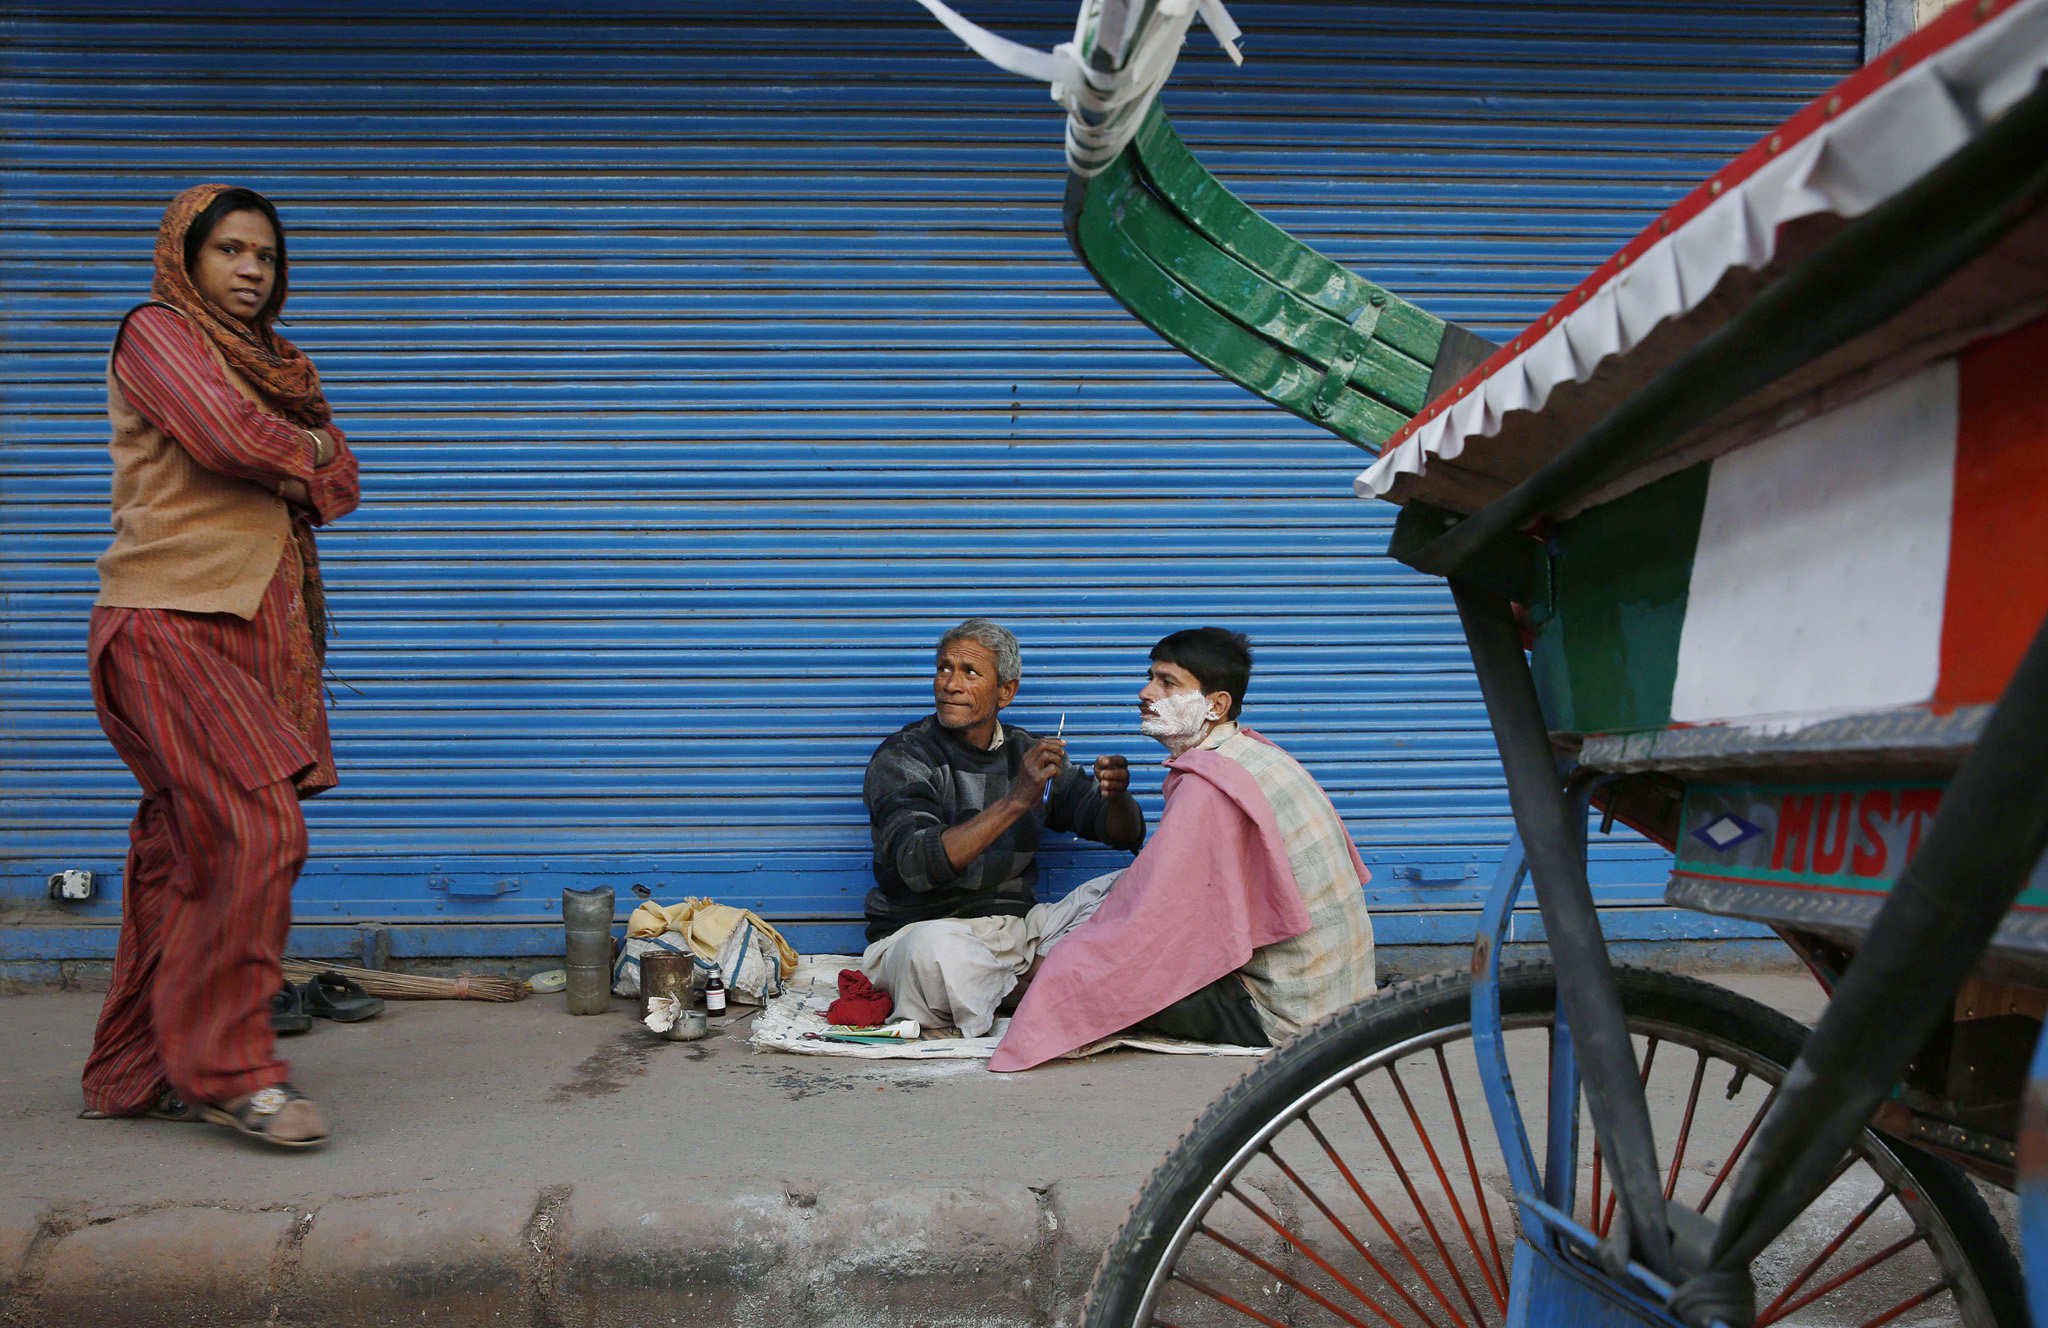 An Indian barber attending to his customer watches a woman in old parts of New Delhi, India, Friday, March 7, 2014.